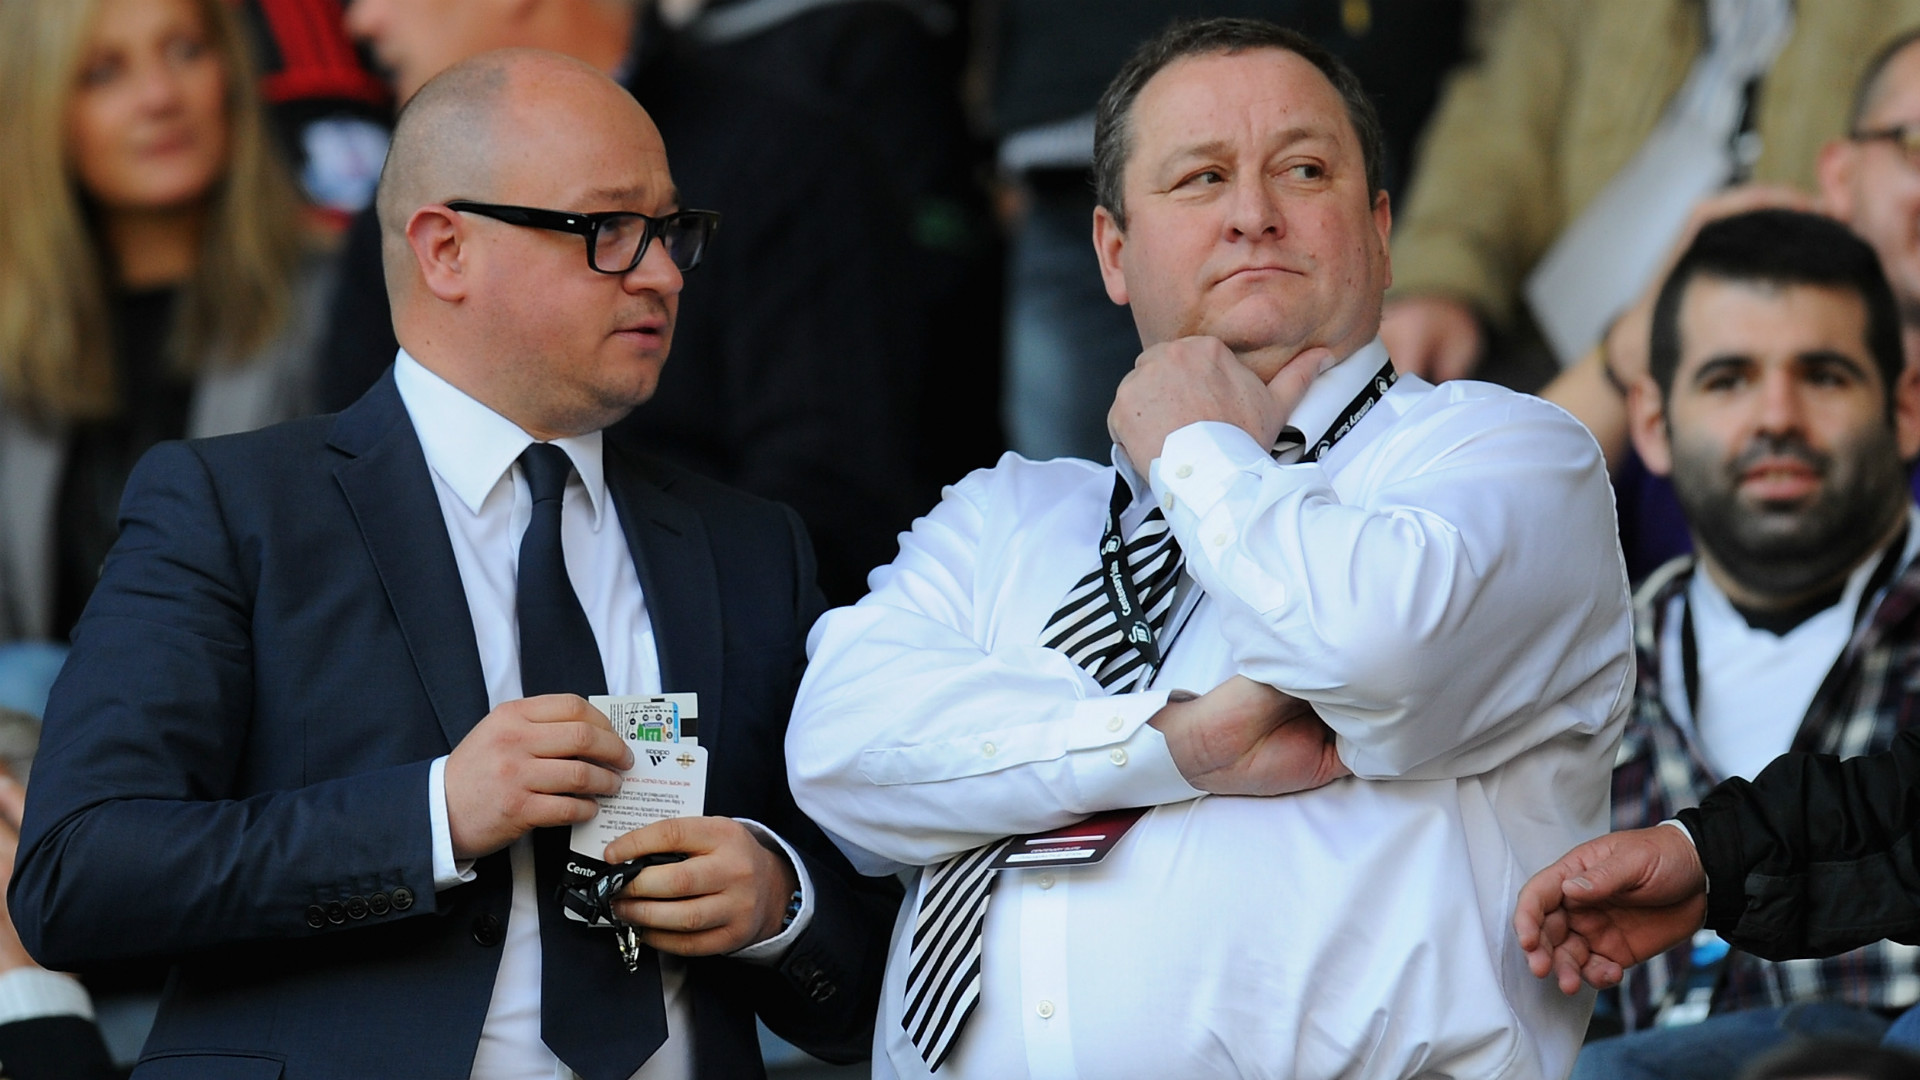 BREAKING: Newcastle United managing director Lee Charnley arrested!